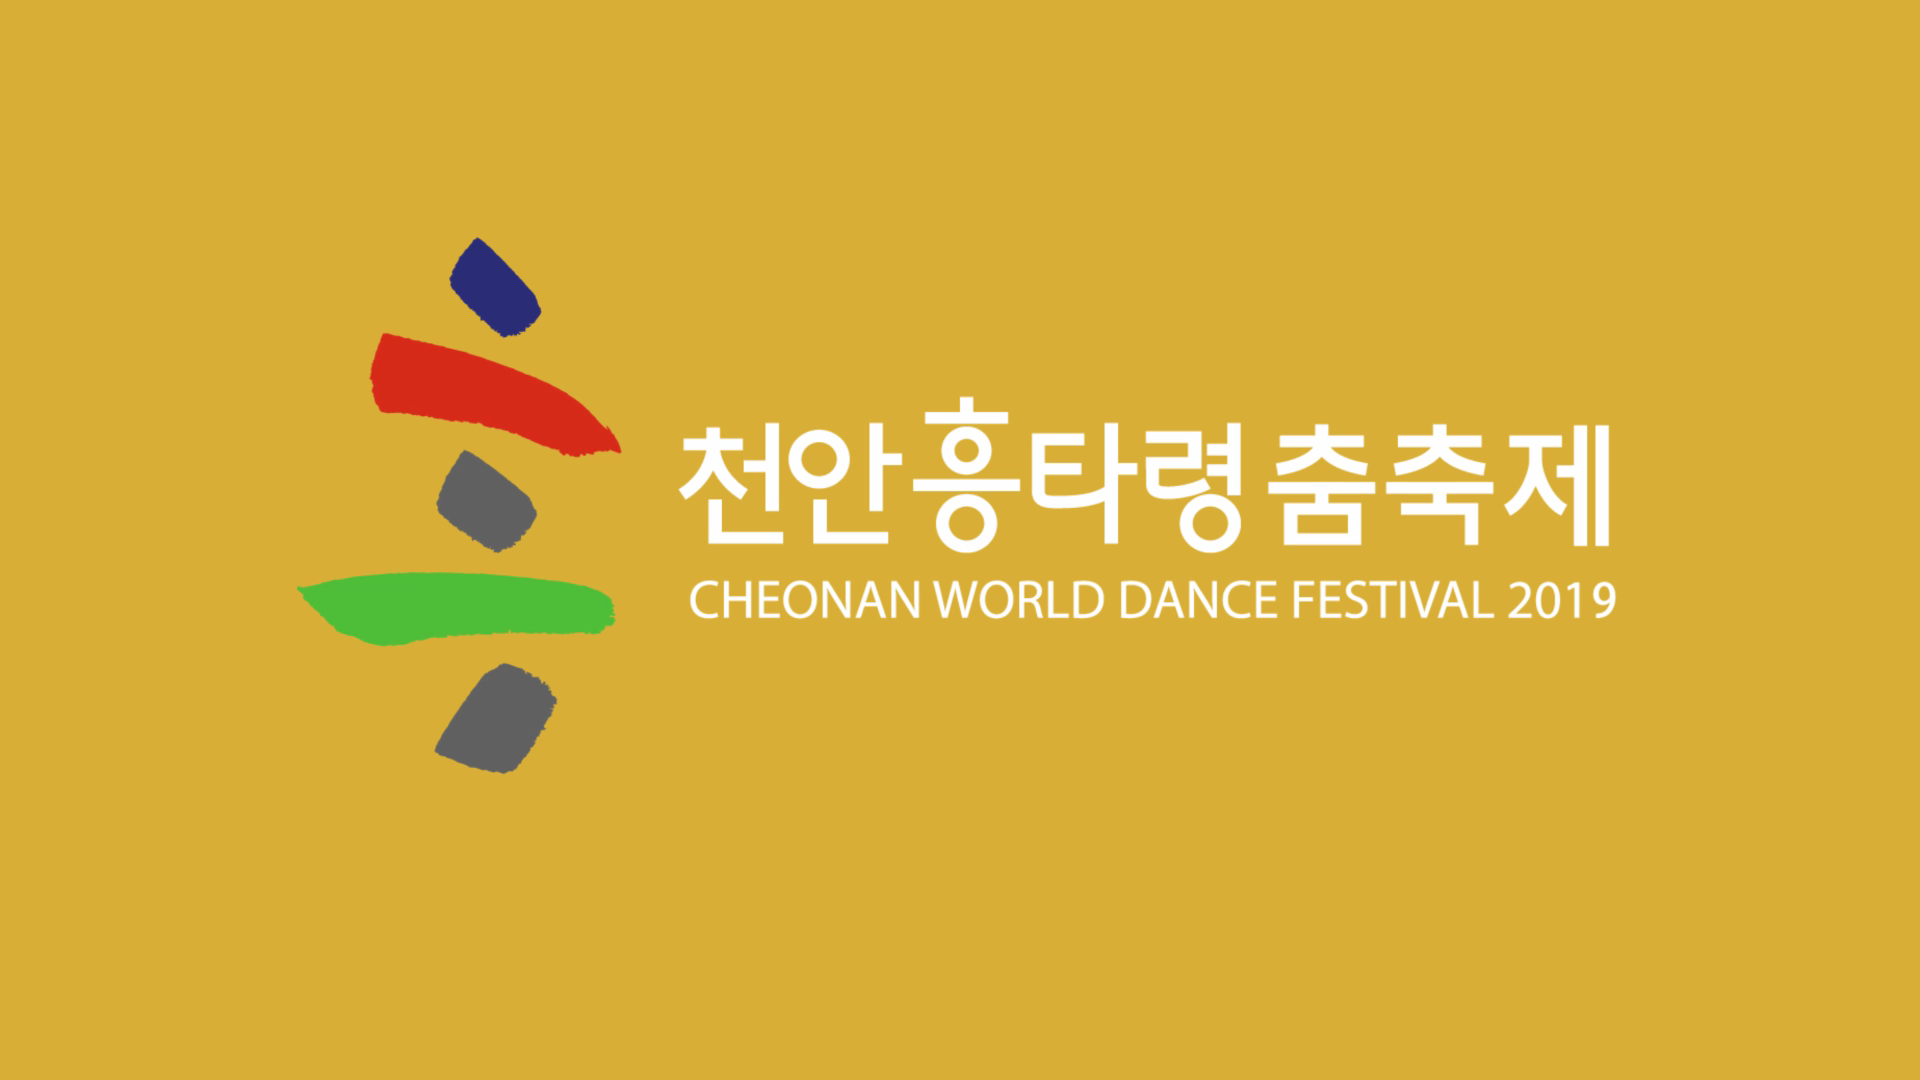 Cheonan World Dance Festival 2019 Highlight.png